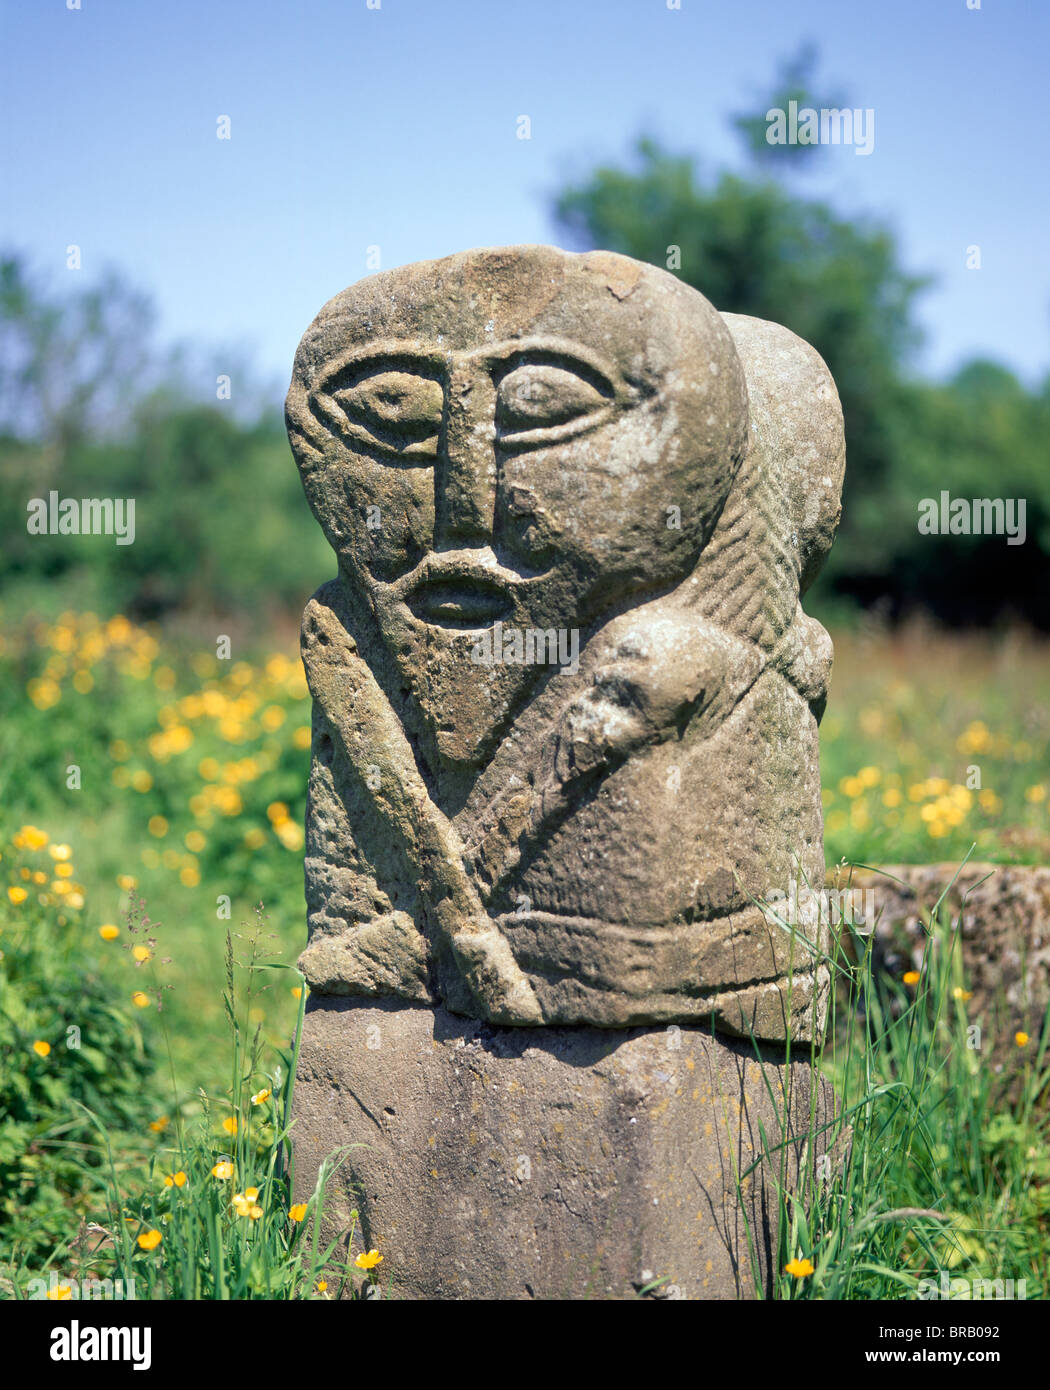 Stone carving boa island county fermanagh northern